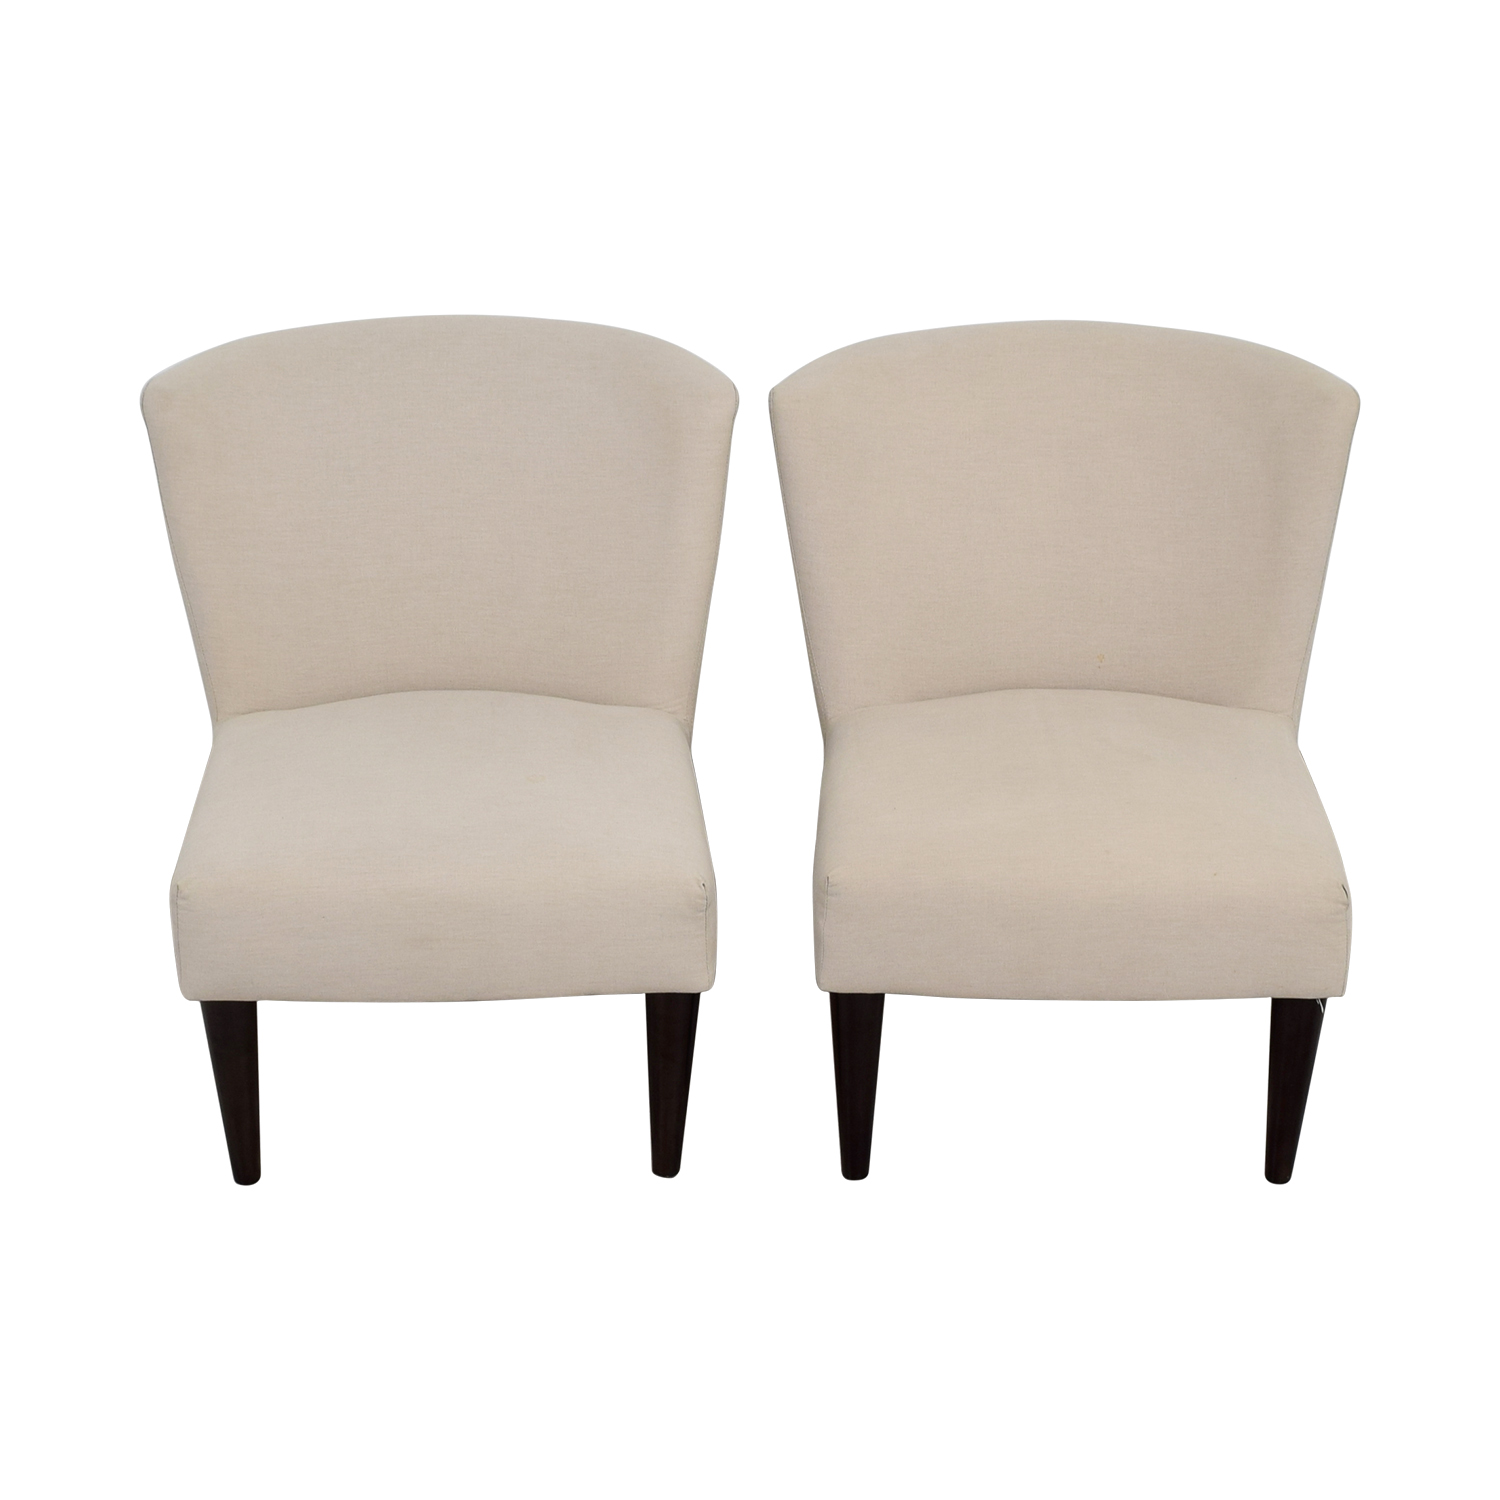 West Elm West Elm Retro Cream Chairs nyc